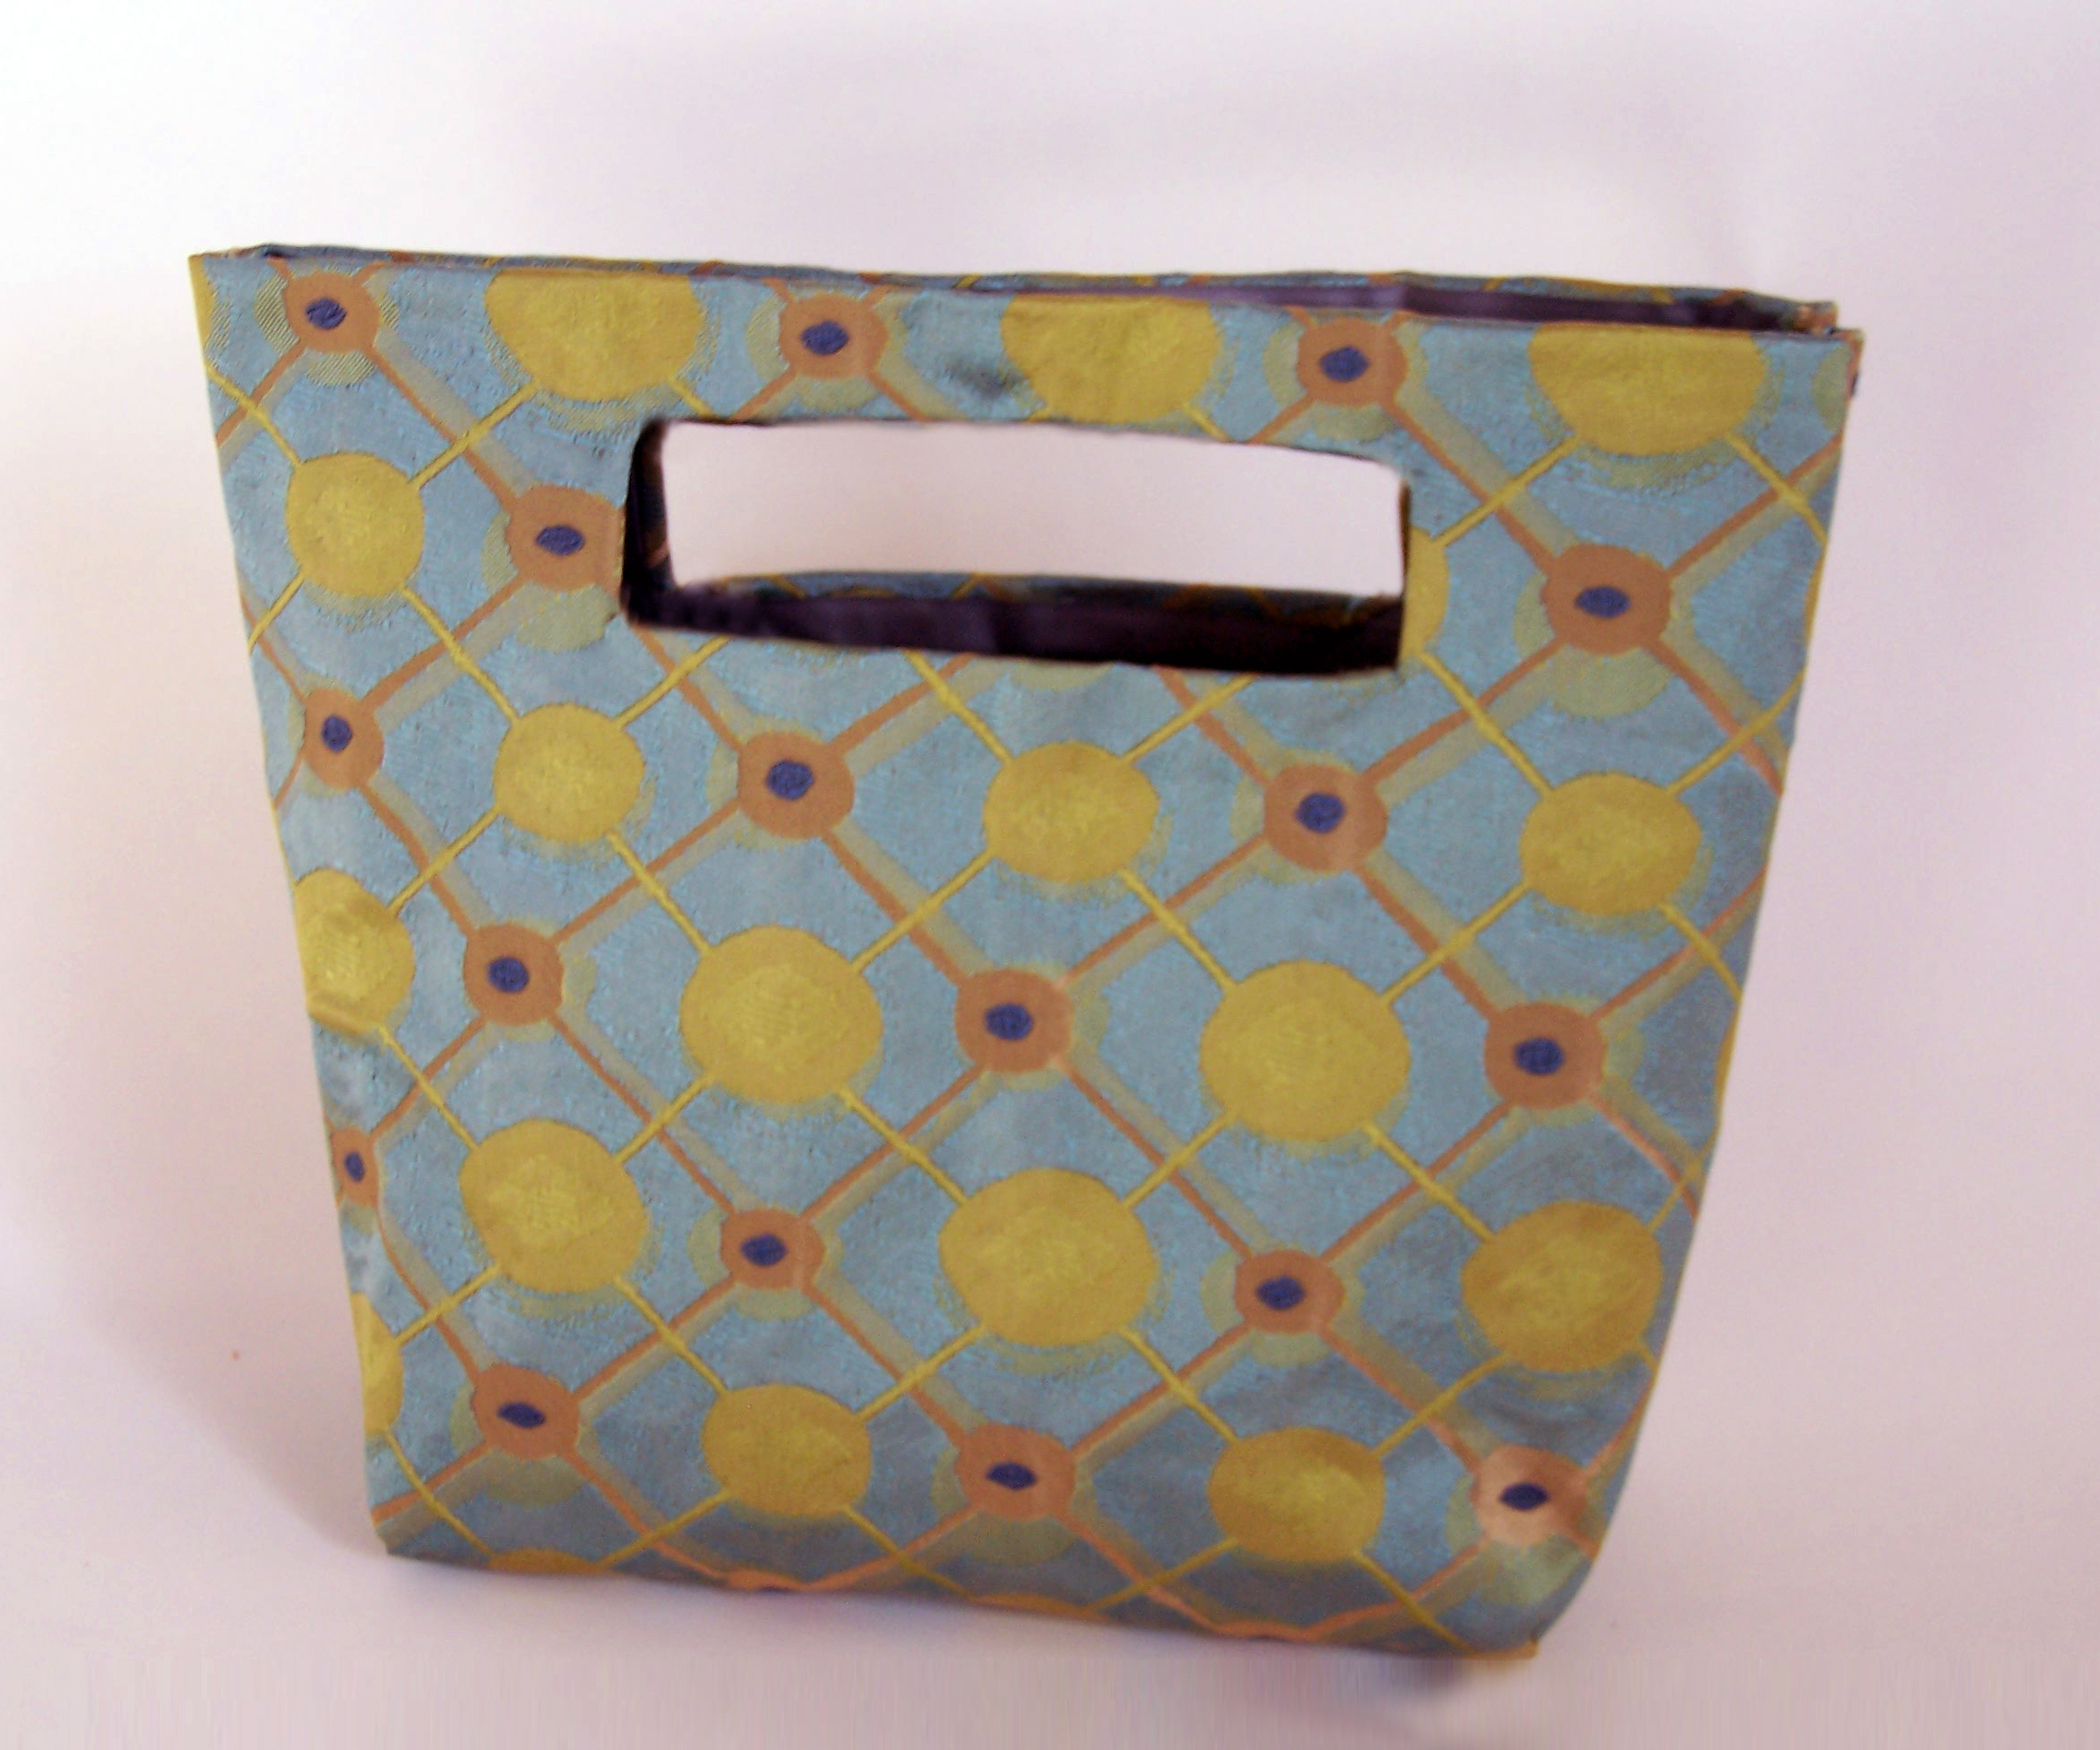 Drawn purse chip Duct Sew Tape Duct Tape